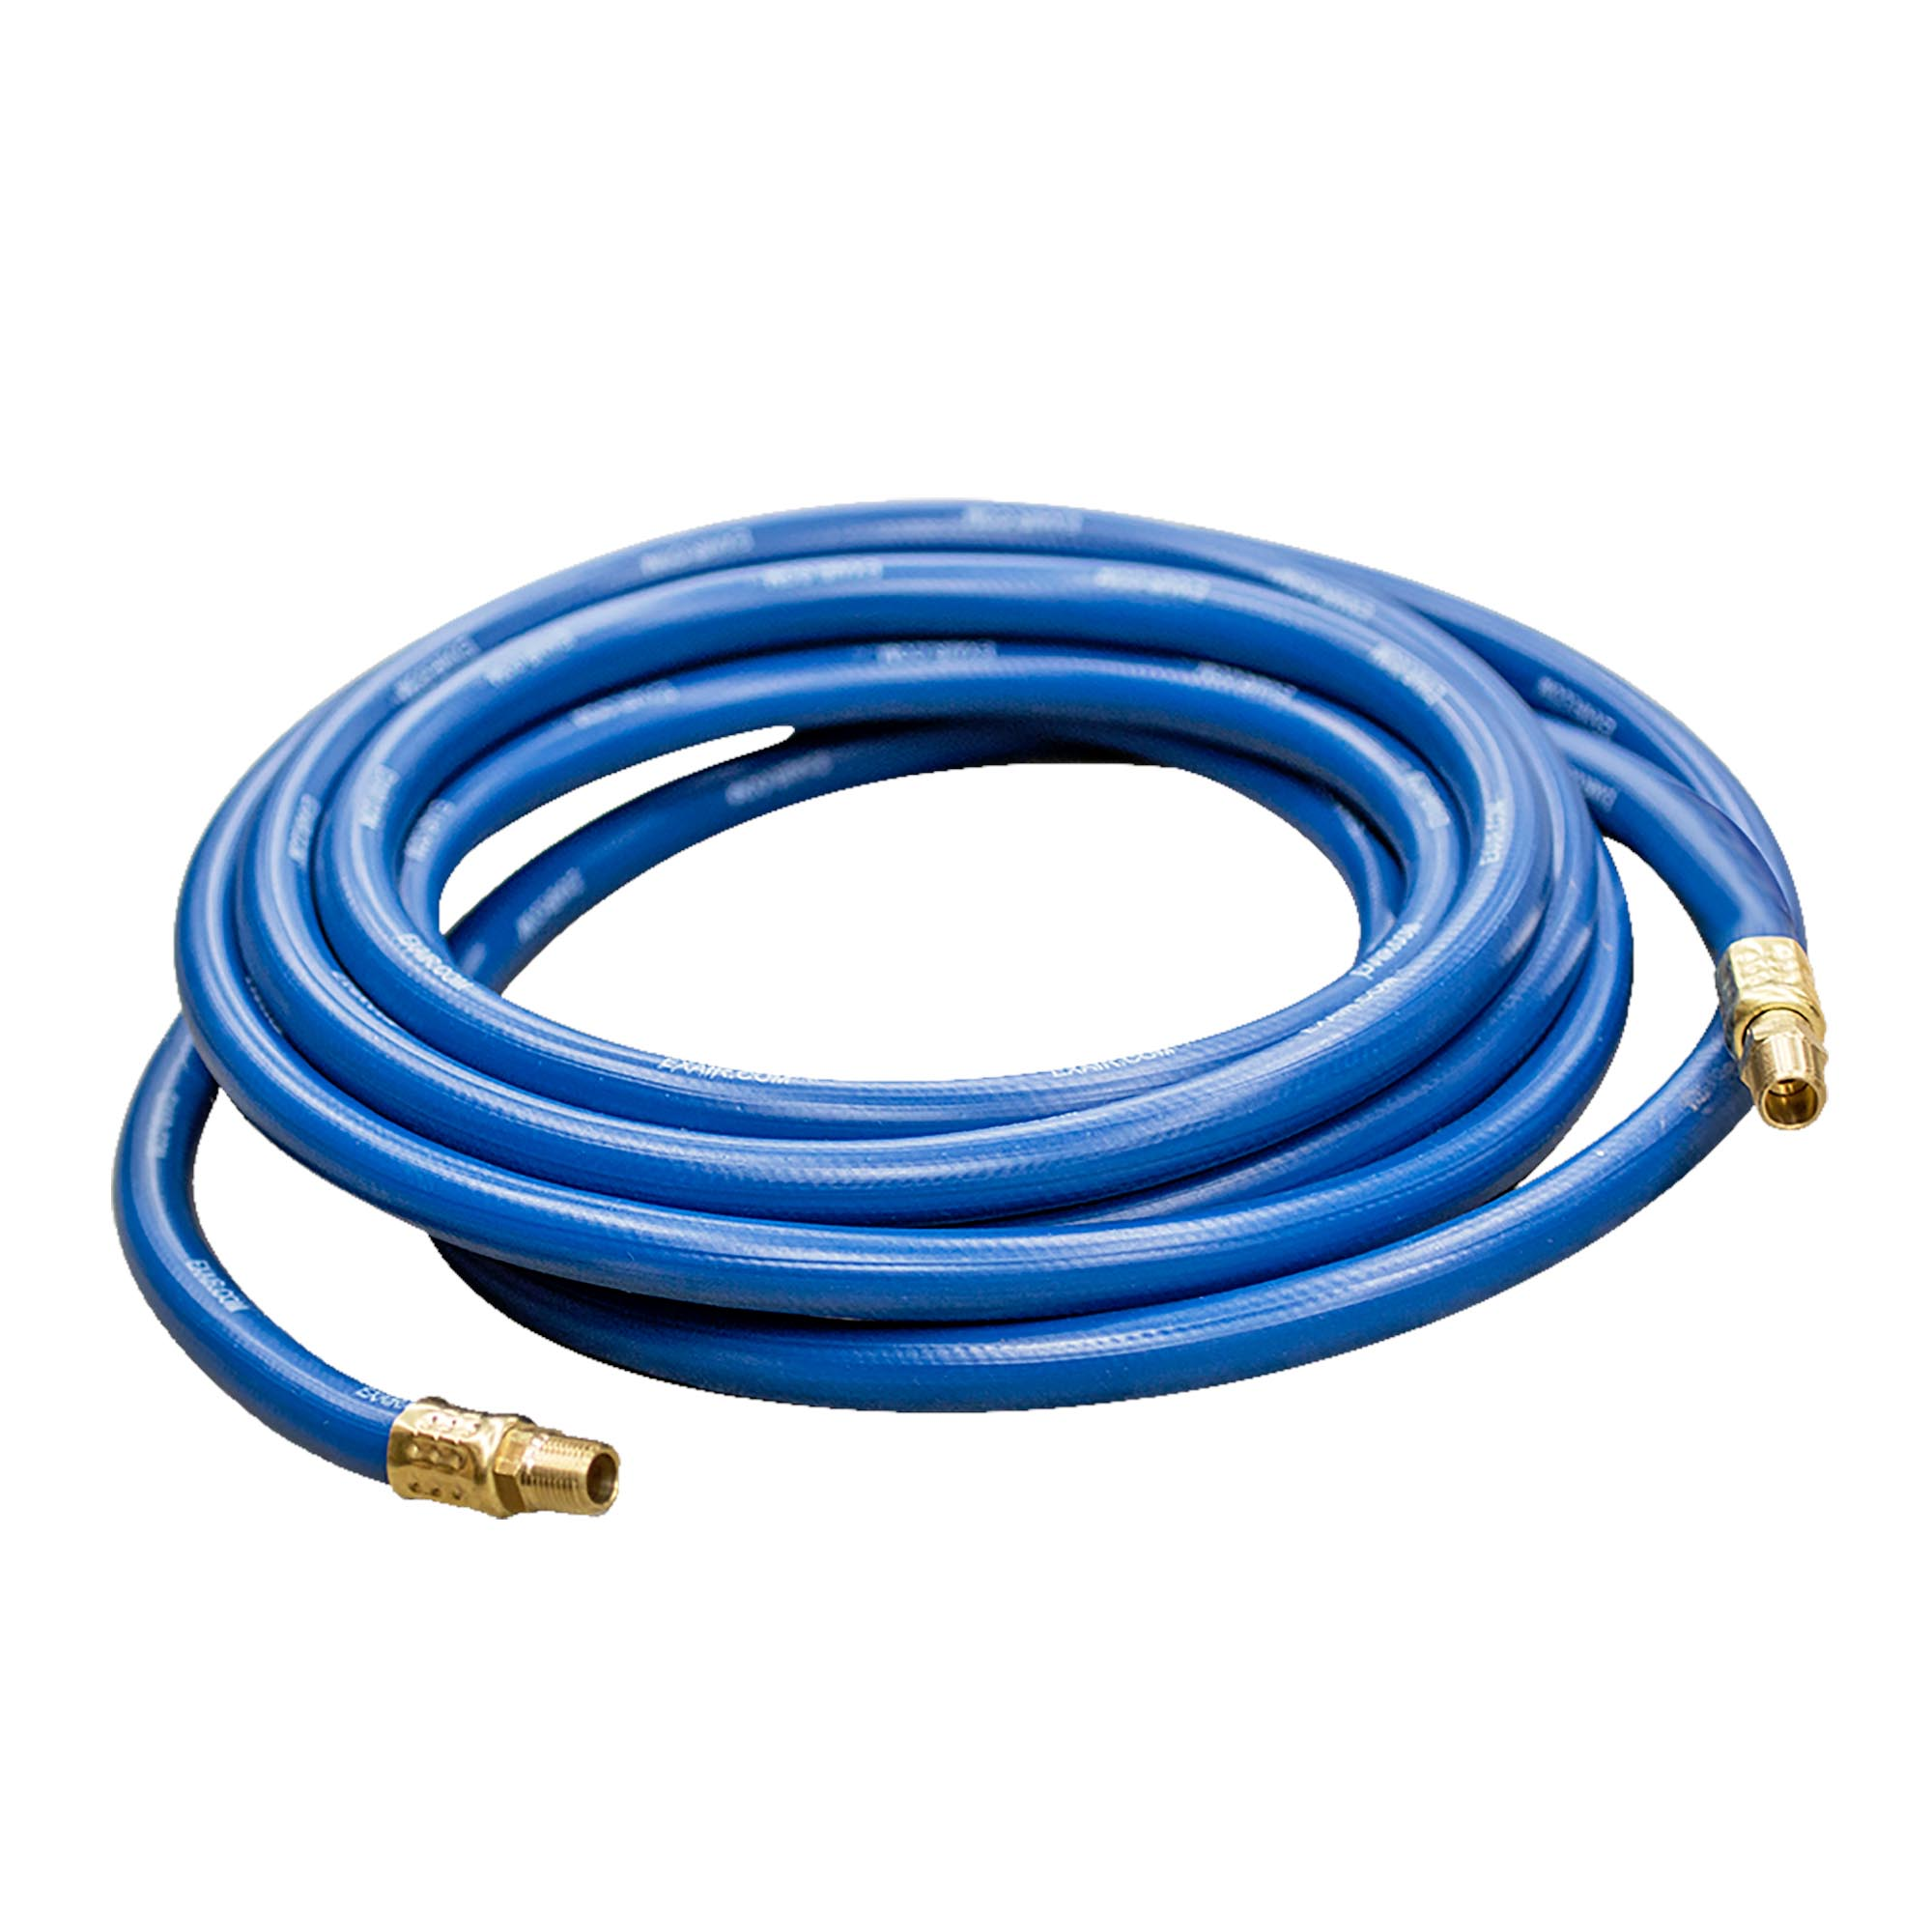 "Model 901055 20 ft. x 1/2"" Compressed Air Hose with Model 900733 Swivel Fittings installed"